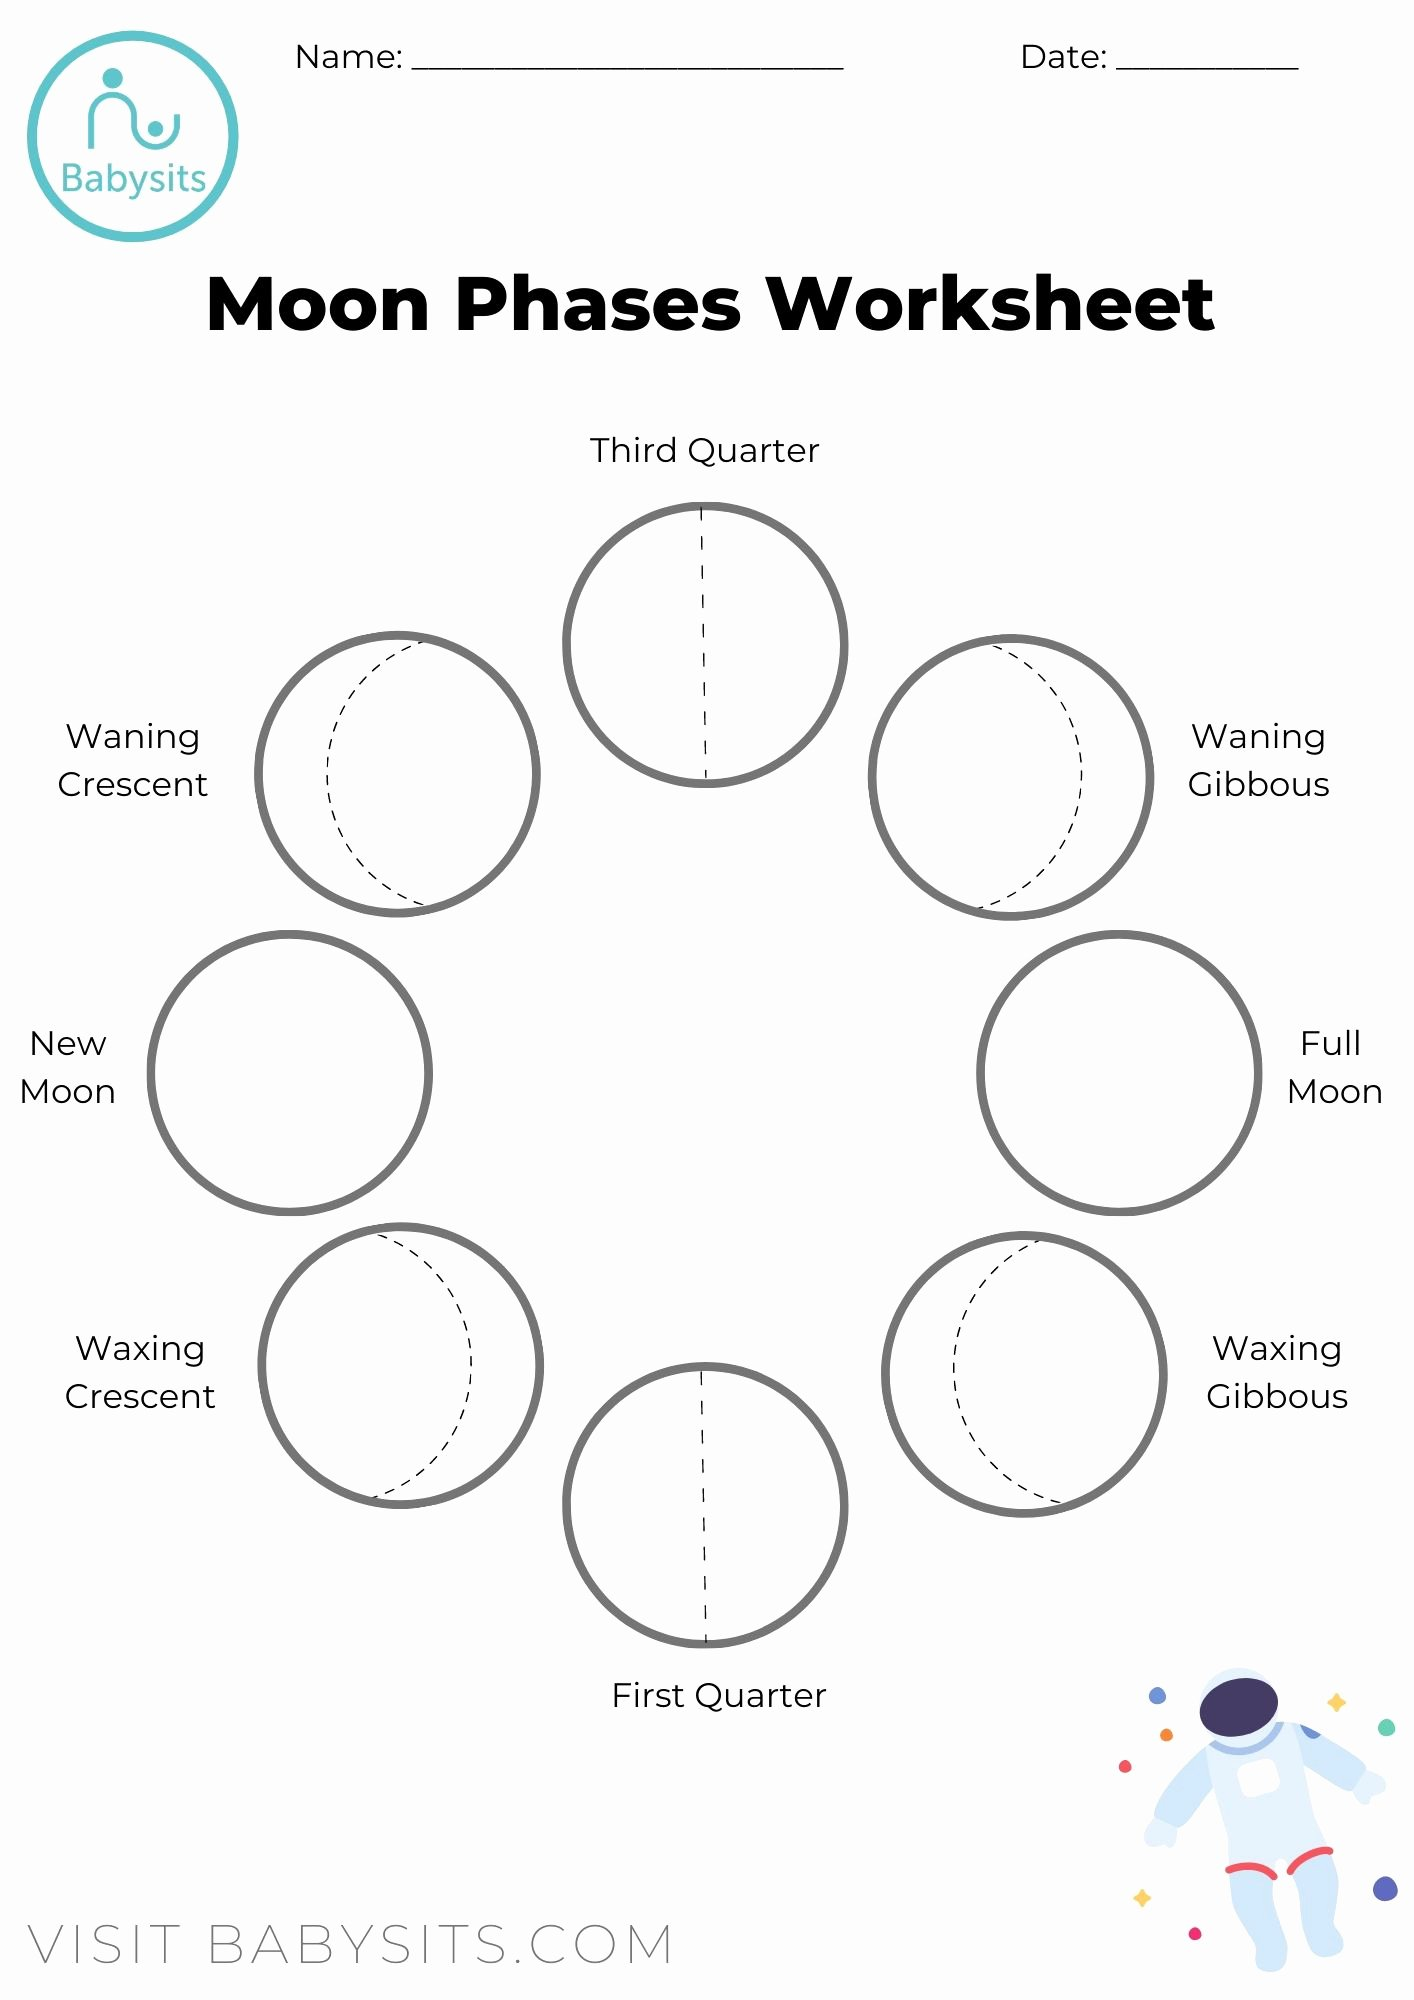 Phases Of the Moon Worksheet Inspirational Phases Of the Moon Space Crafts for Kids with Moon Phases